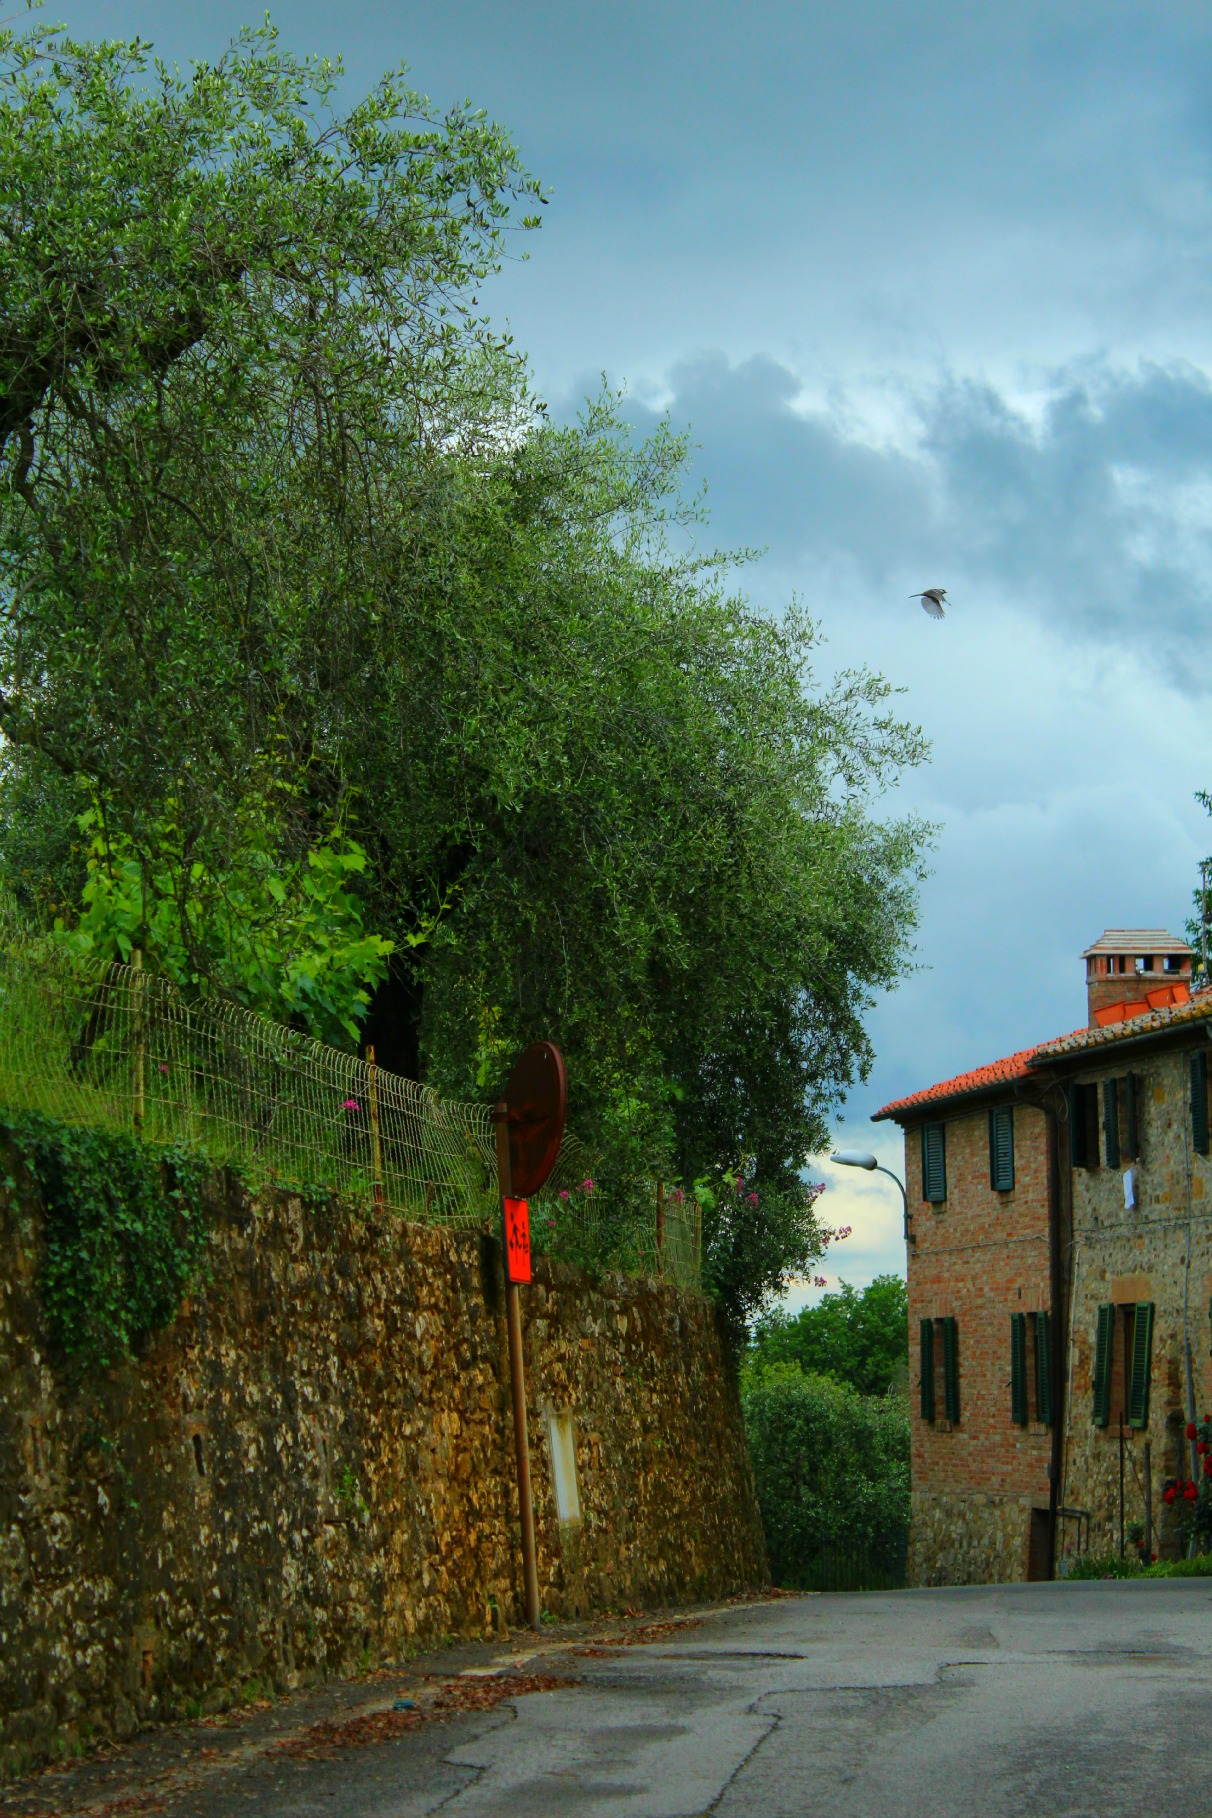 A weekend getaway in Tuscany, by Packing my Suitcase.